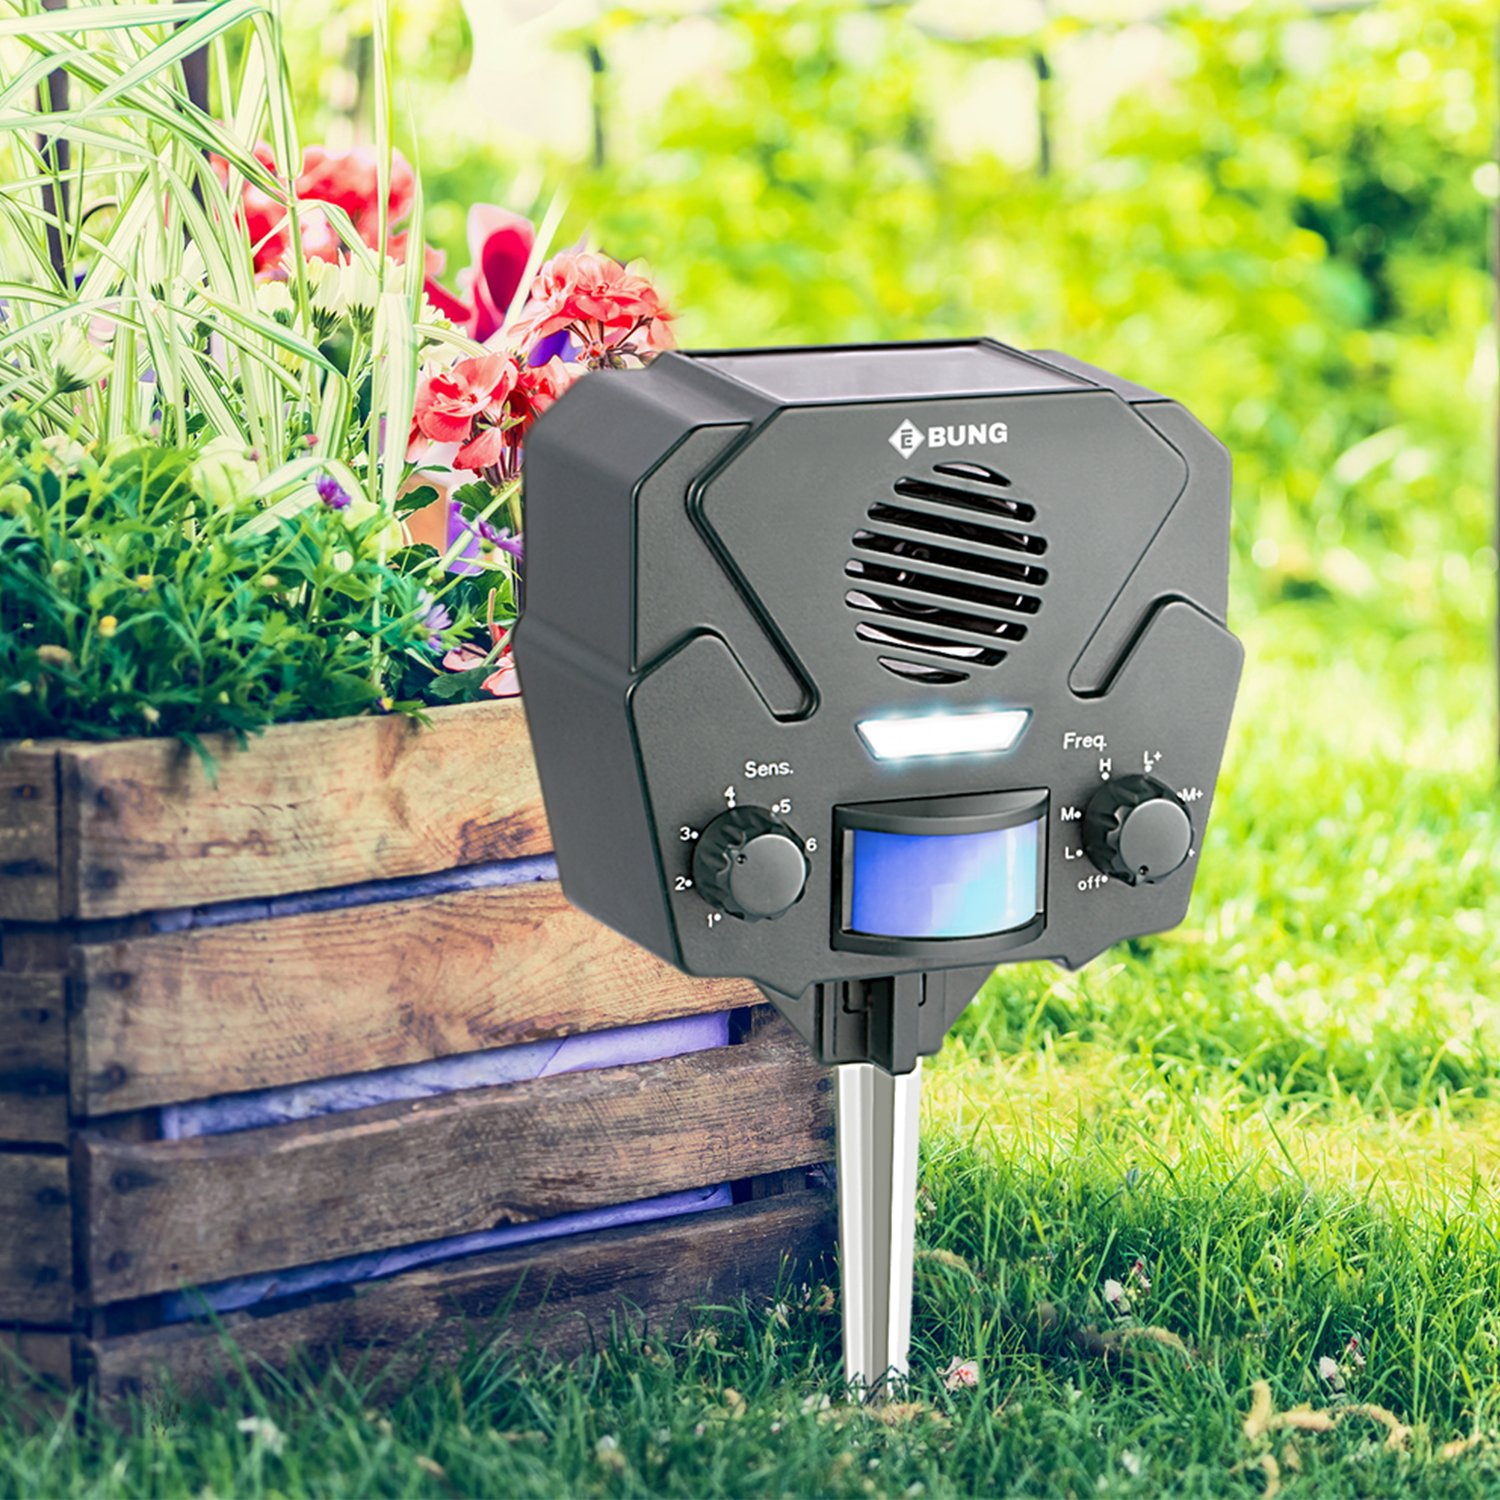 Ebung Ultrasonic Solar Powered Pest Animal Repeller Eco Friendly Scarer Safe Repellent Ideal Way